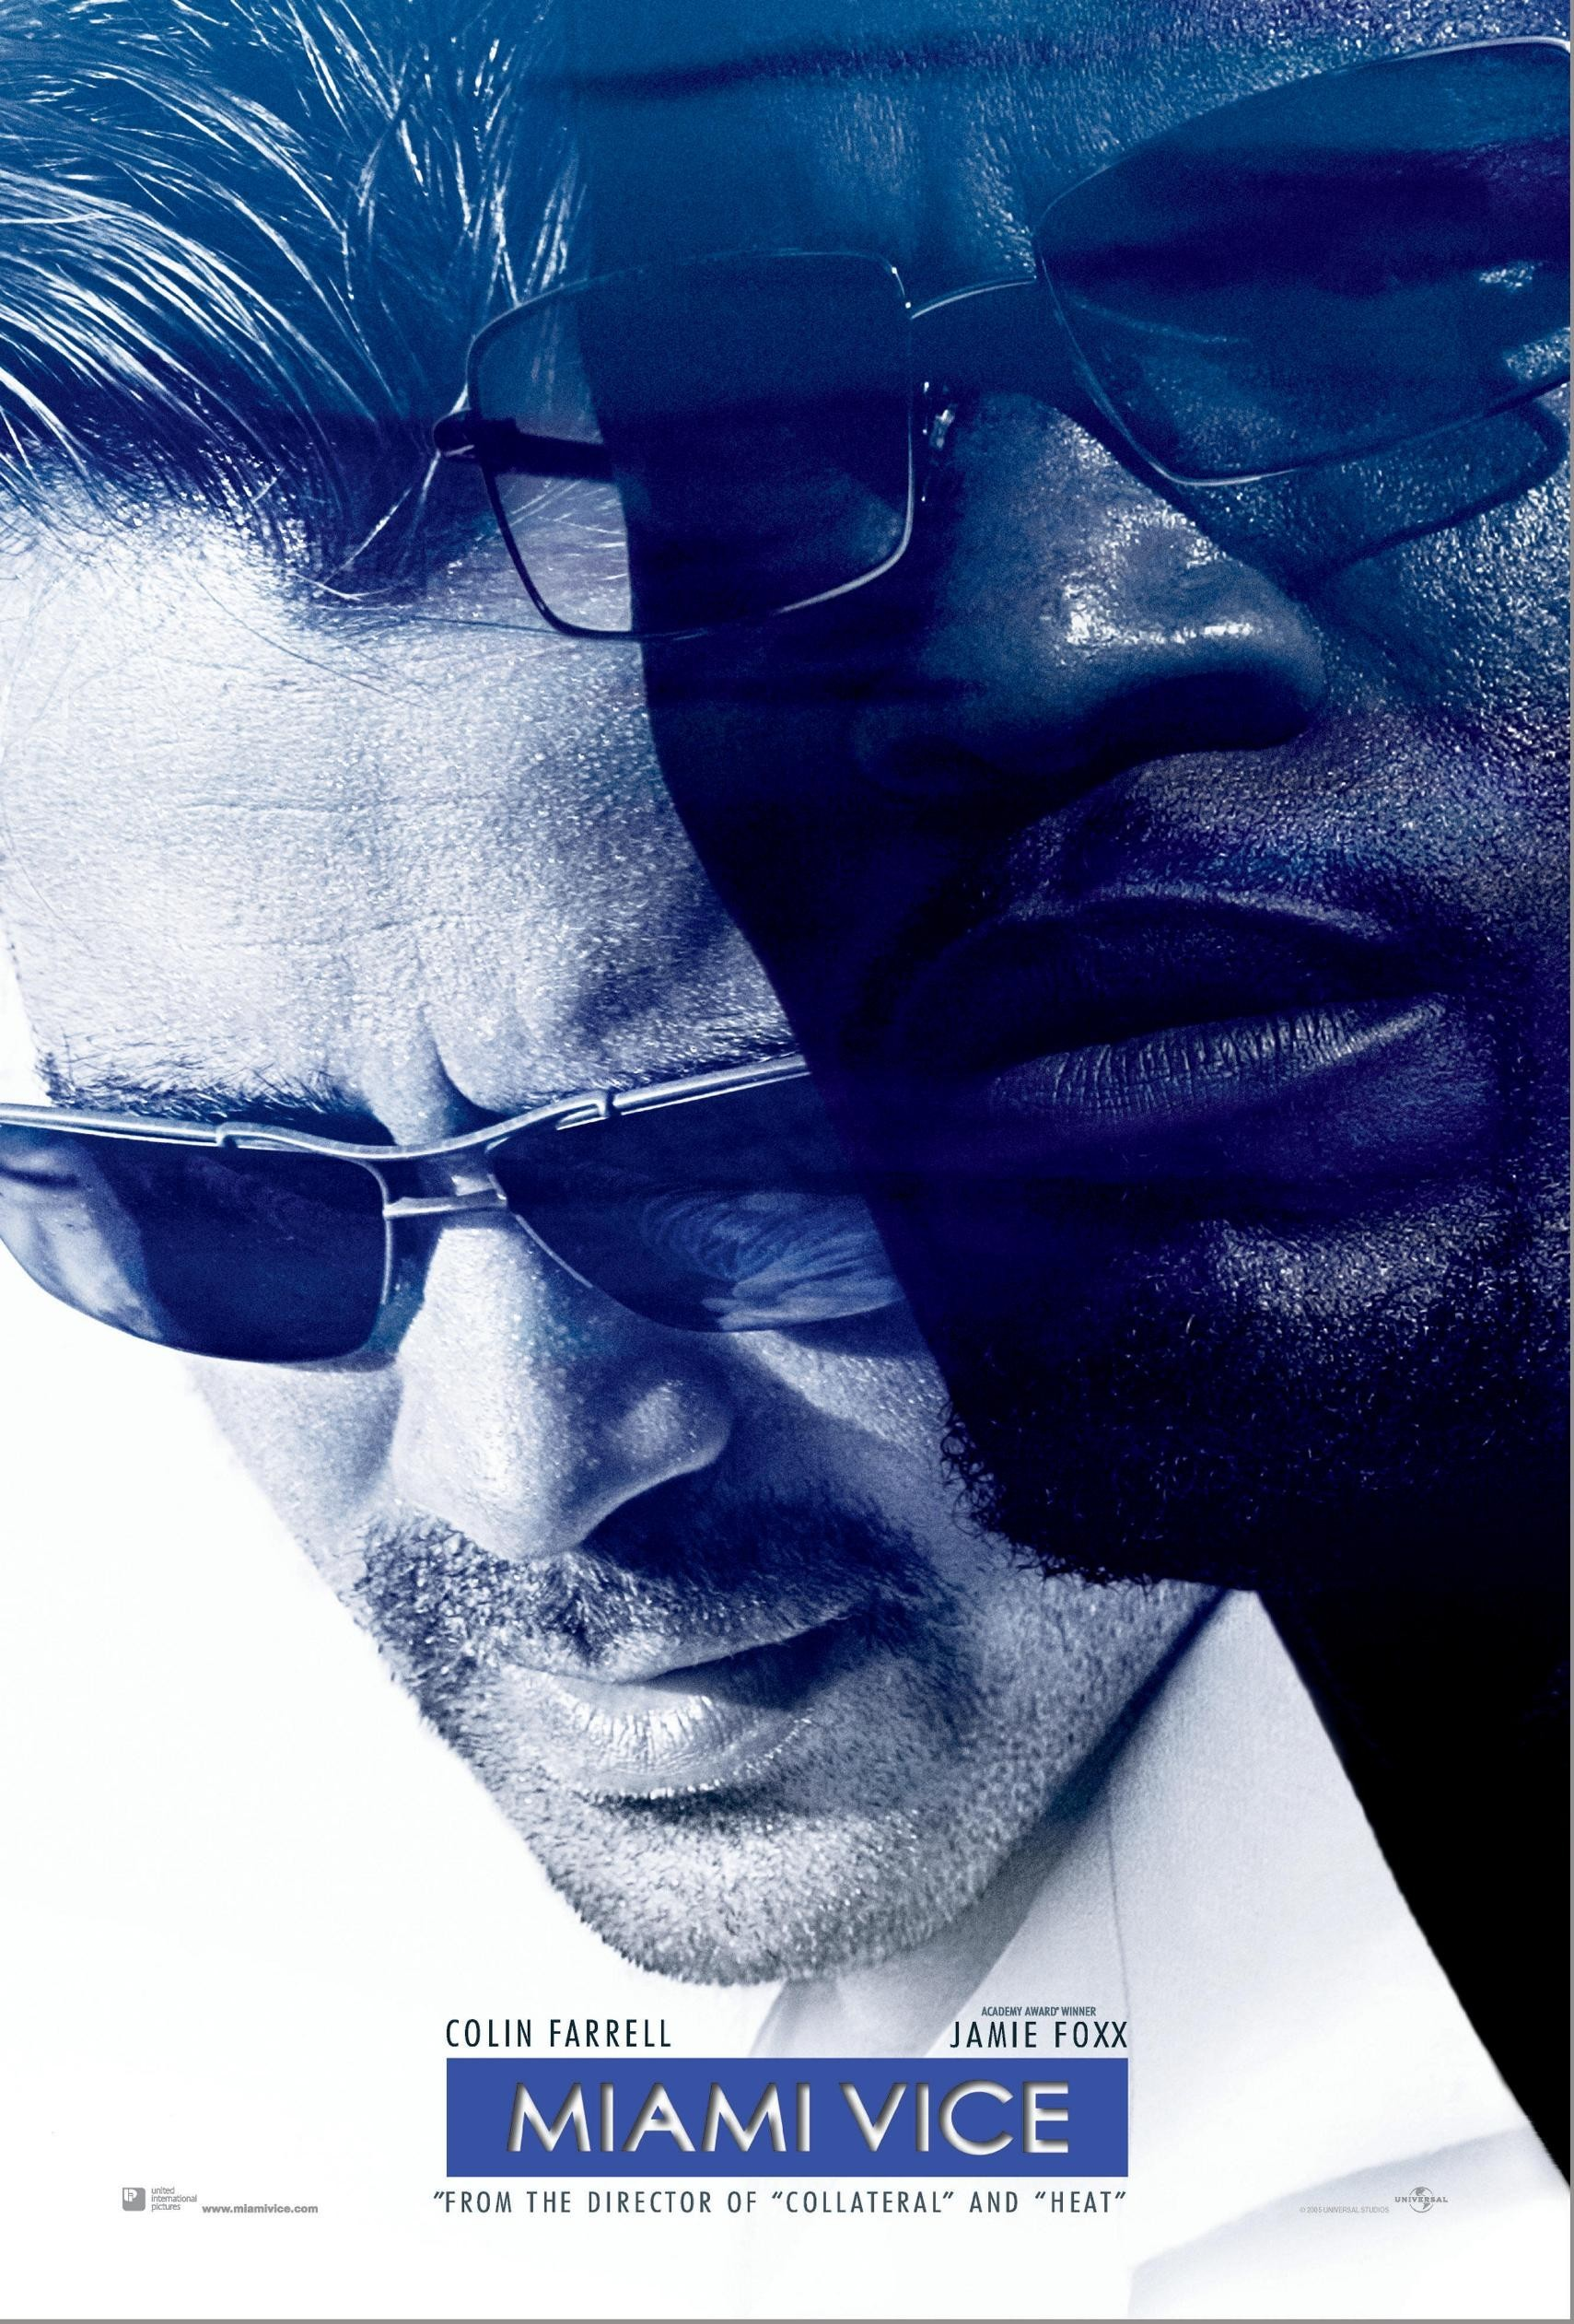 miami vice 2006 Ranking + Dissected: Michael Mann